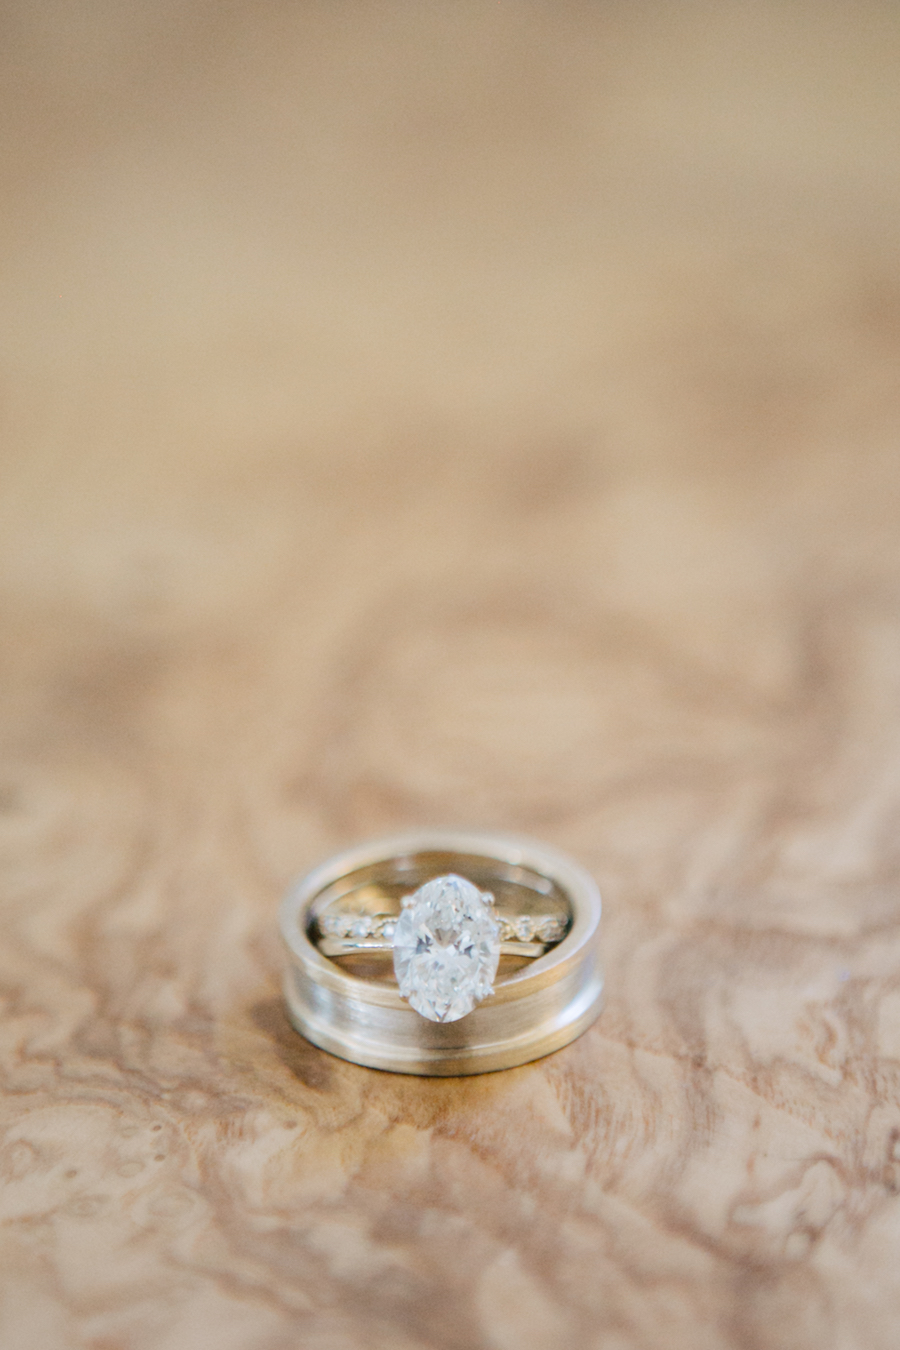 ROQUE Events - Amber and Vince - Courtney Lindberg Photography - Napa Valley Wedding4.JPG